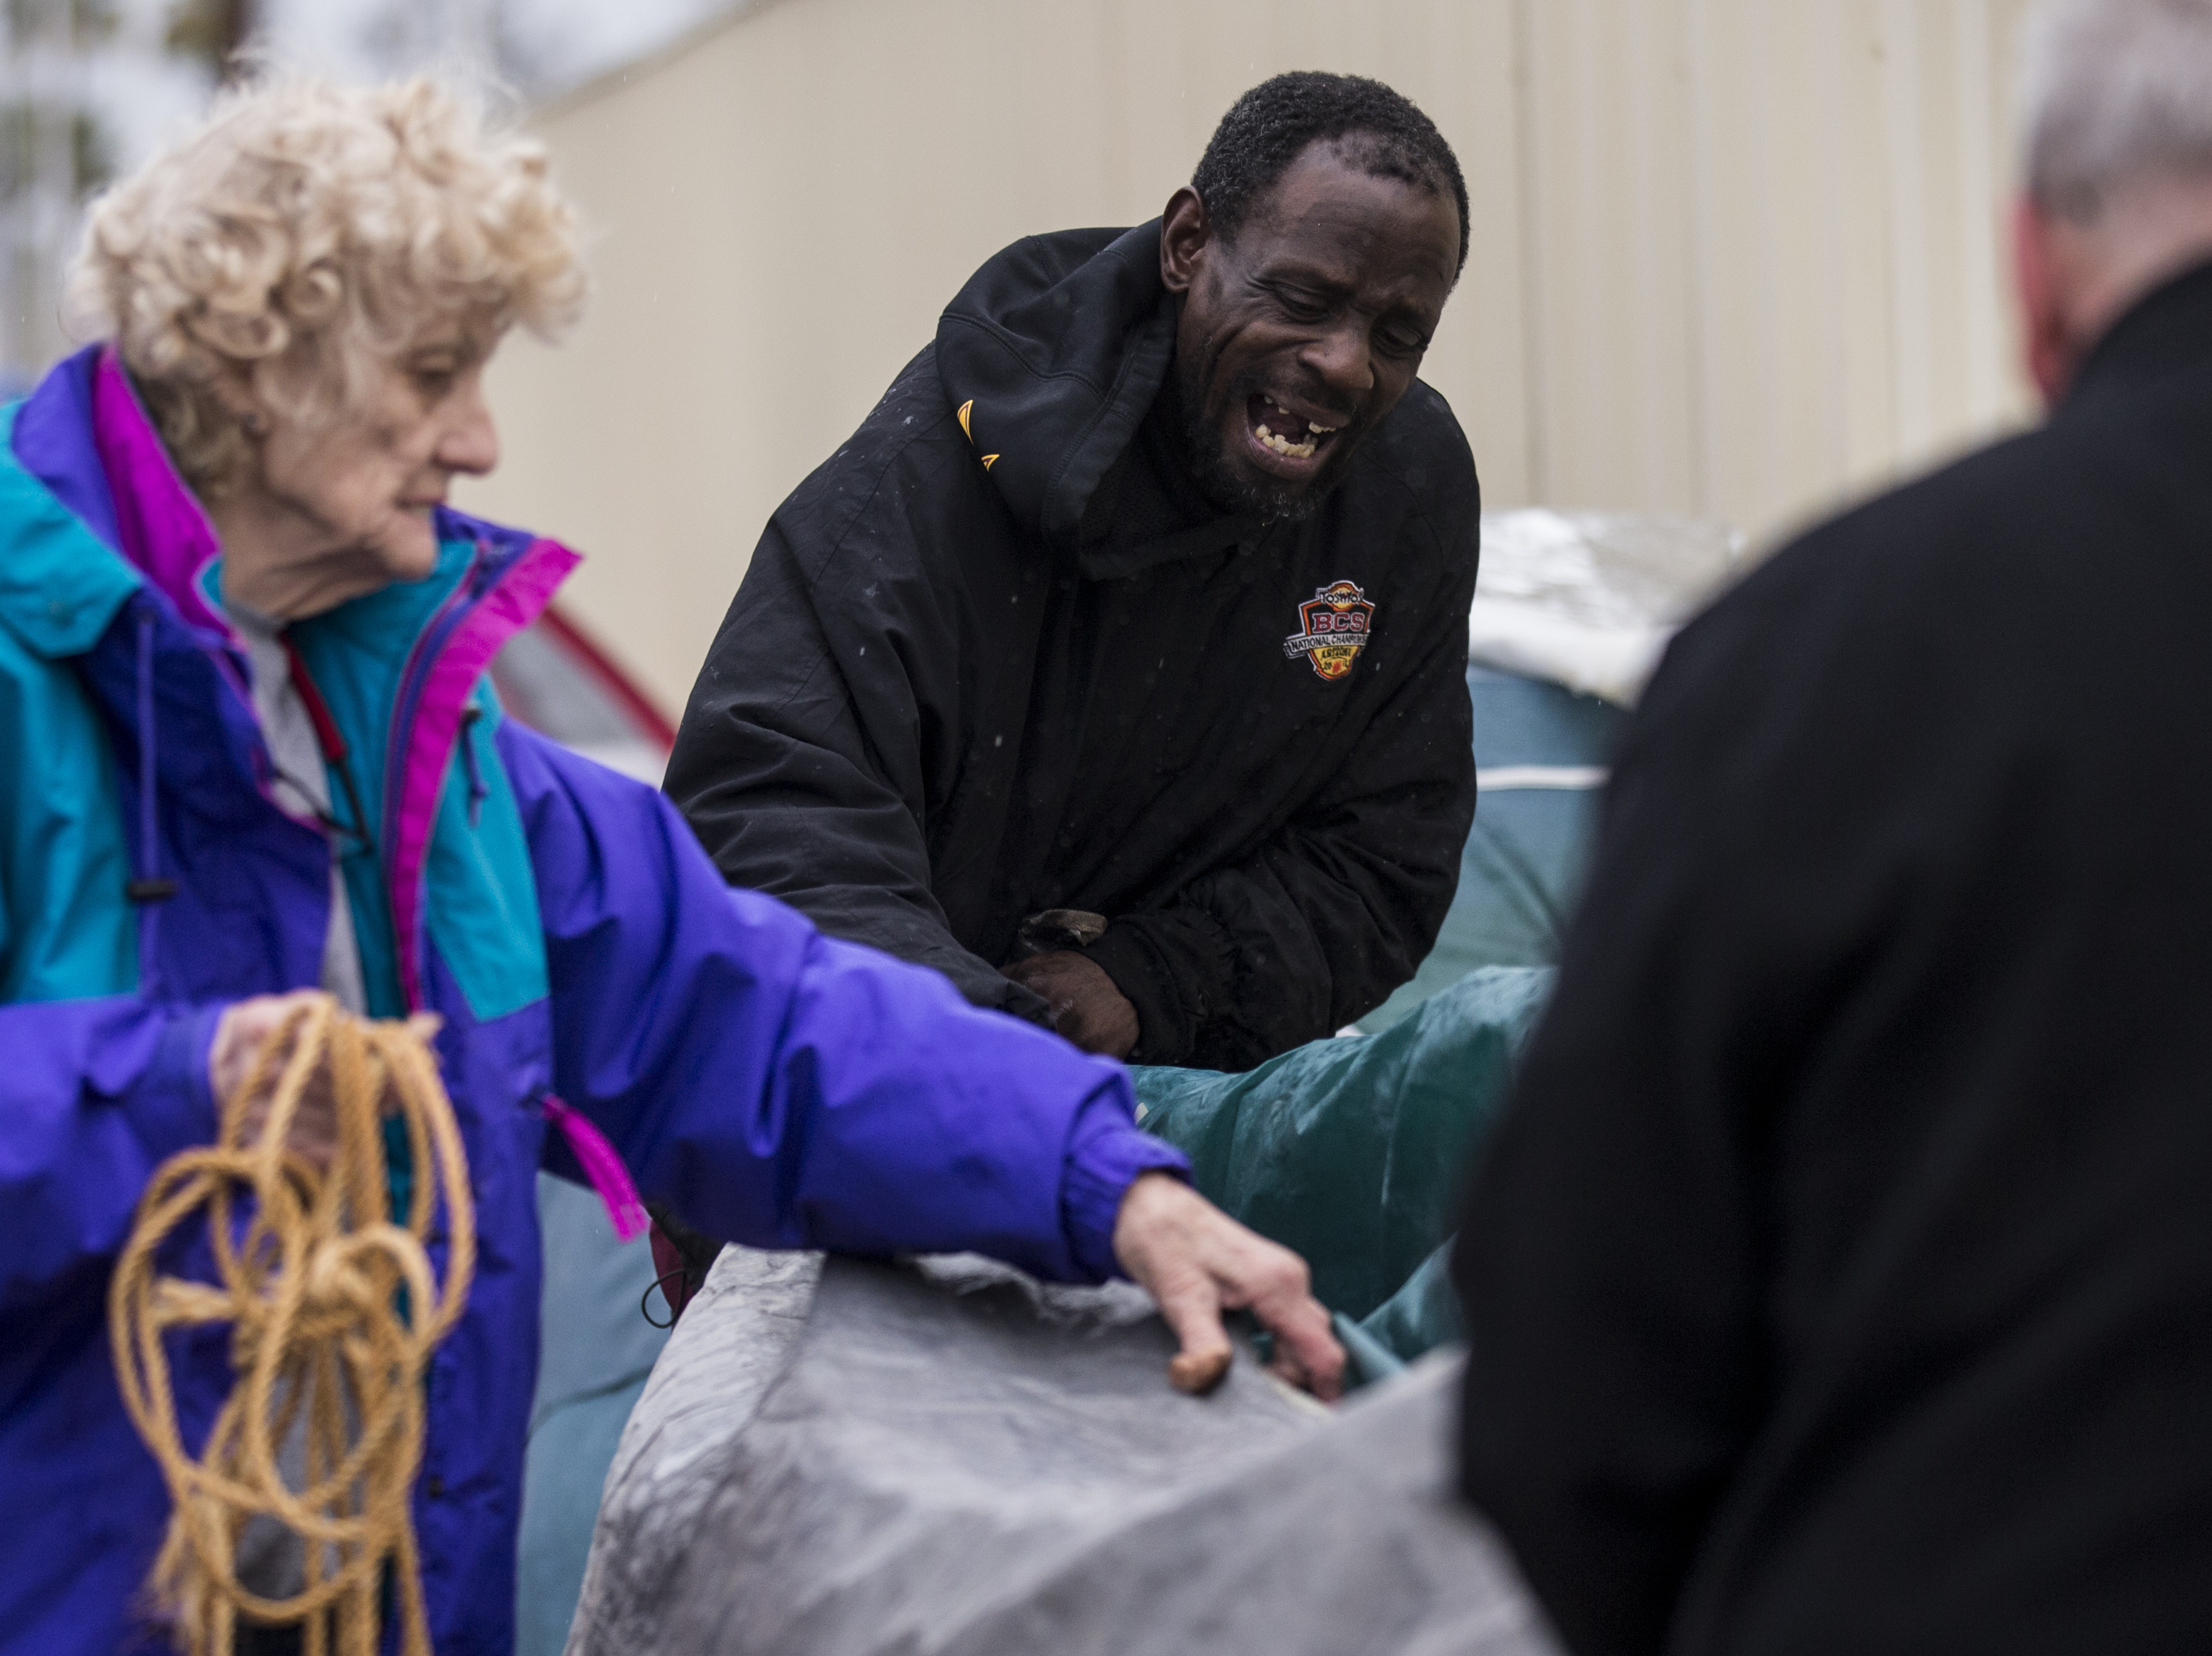 Hosea Williams (center) helps Linda Lou Harris and Larry Downes break down a tent after waiting in line to get free dental work on Dec. 6, 2018, at the Arizona State Fairgrounds in Phoenix. The group's things got soaked by the rain and they decided they would come back next year.